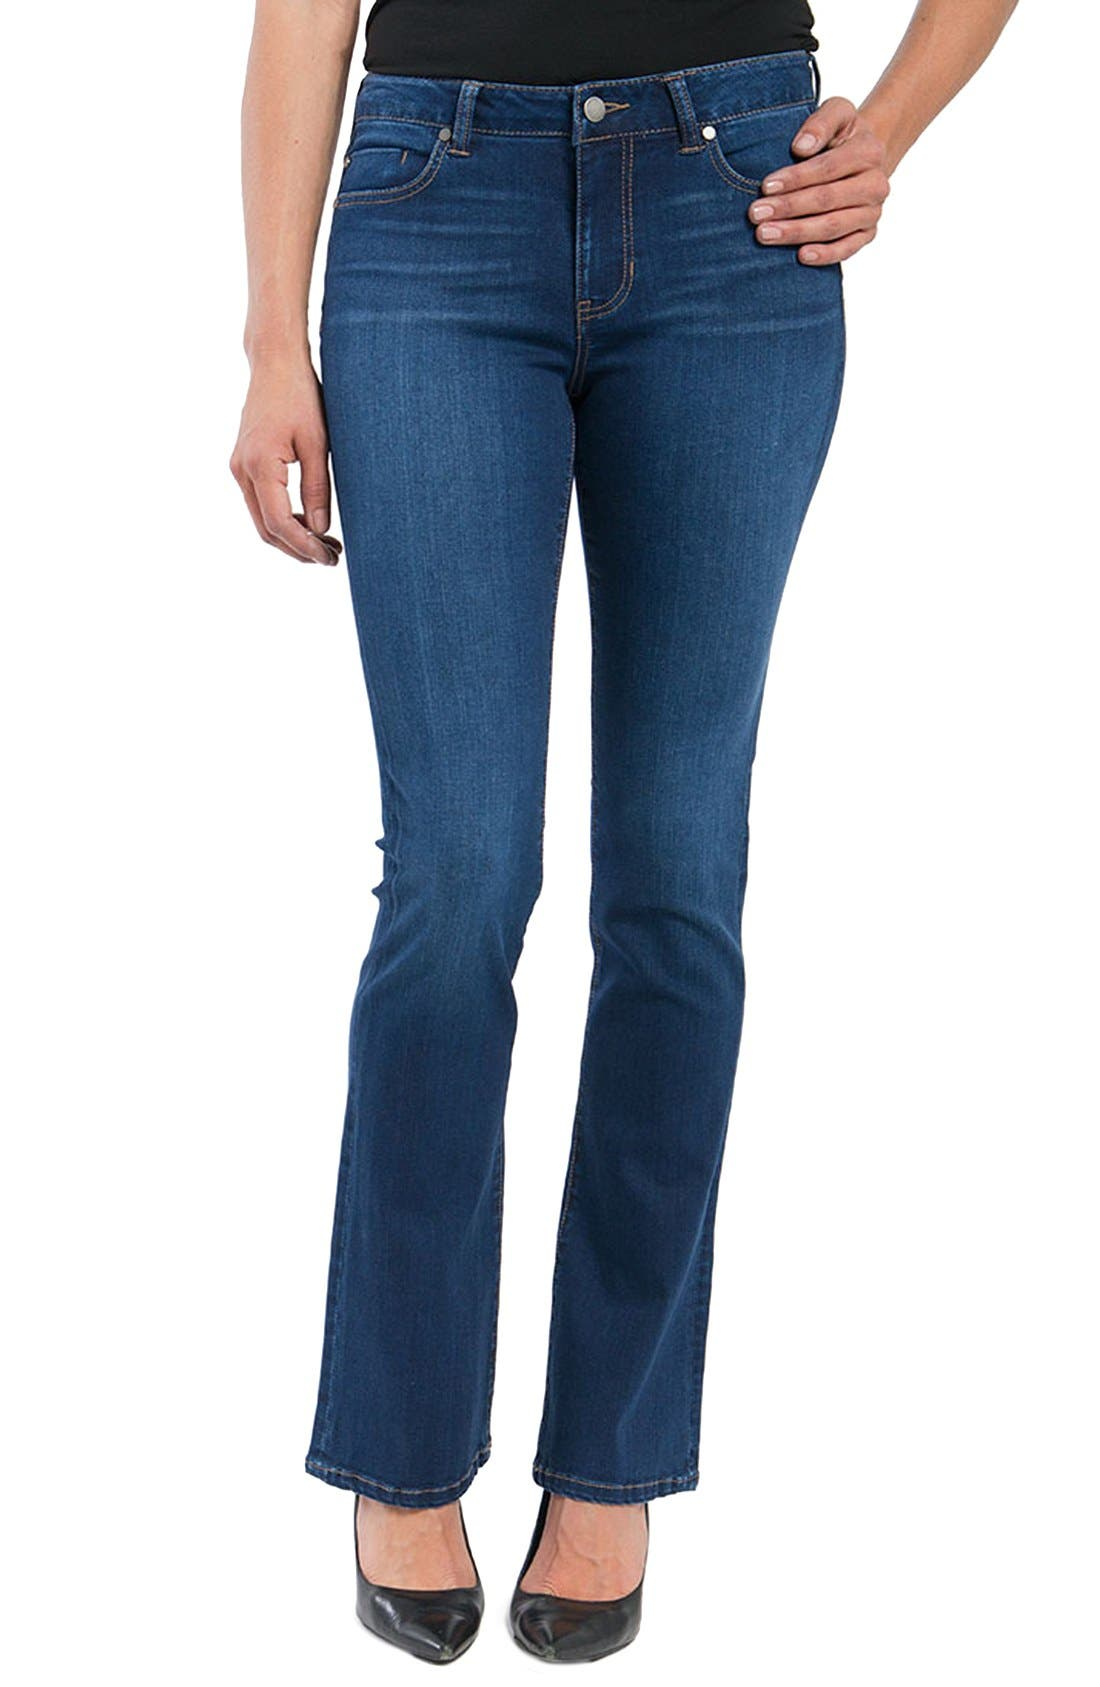 LIVERPOOL JEANS COMPANY Isabell Stretch Bootcut Skinny Jeans